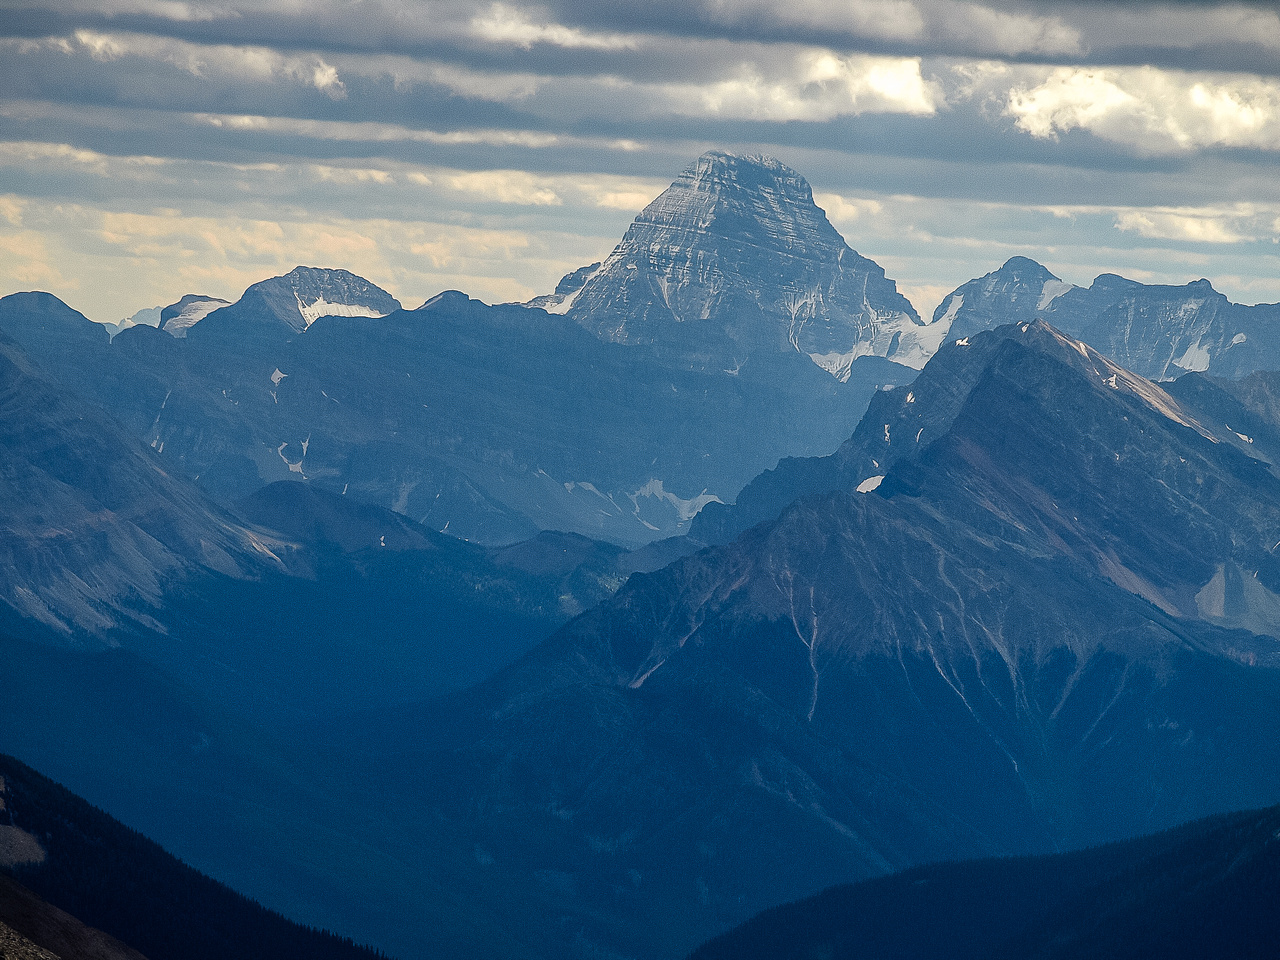 It would take another 5 years before I'd finally stand on the summit of this king of the Rockies - Mount Assiniboine.